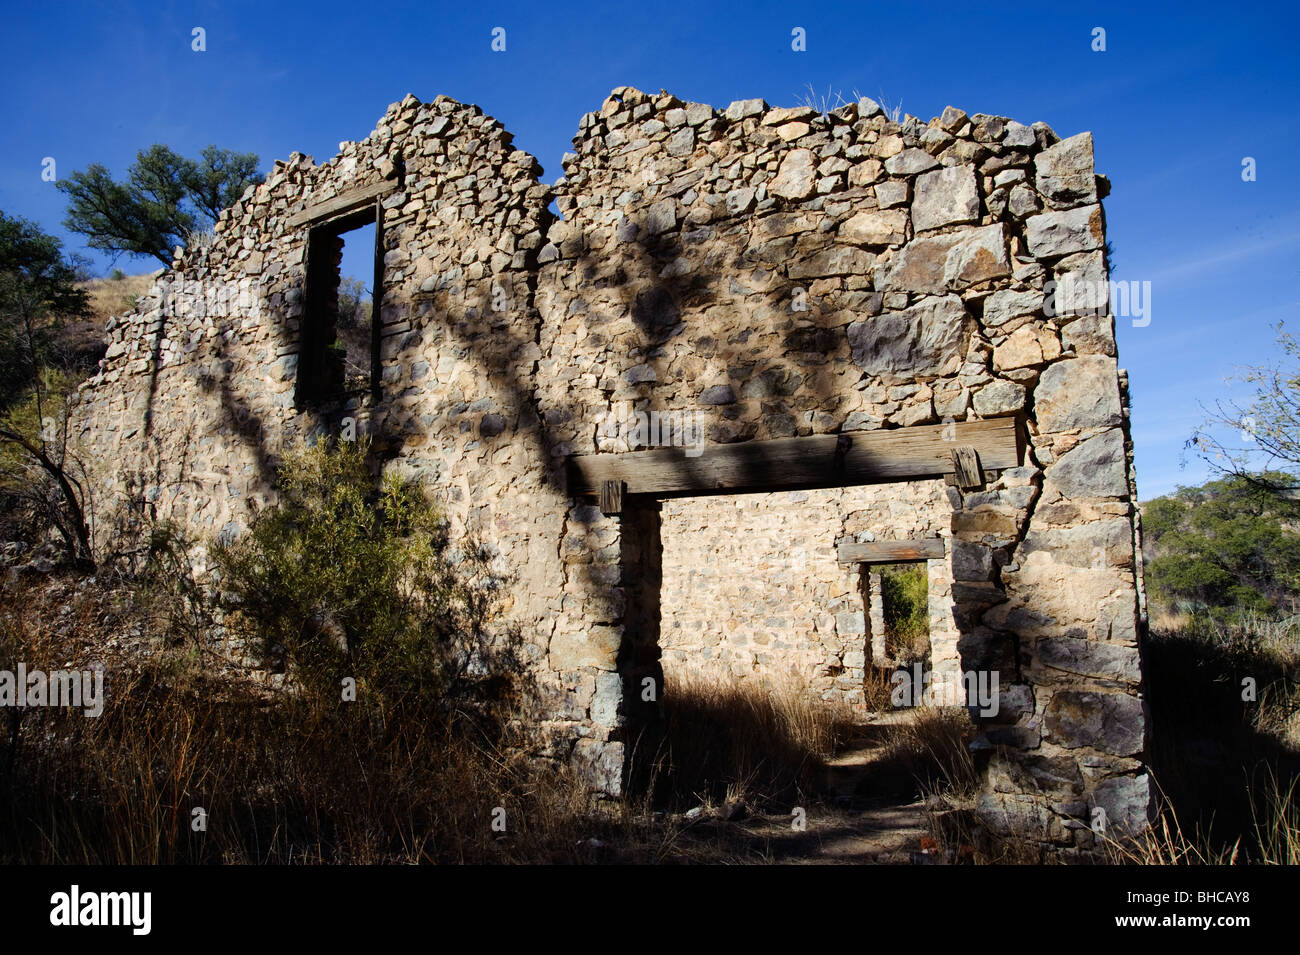 Ruins of an old mining camp in the mountains of Southern Arizona.  These substantial structures are evidence of - Stock Image